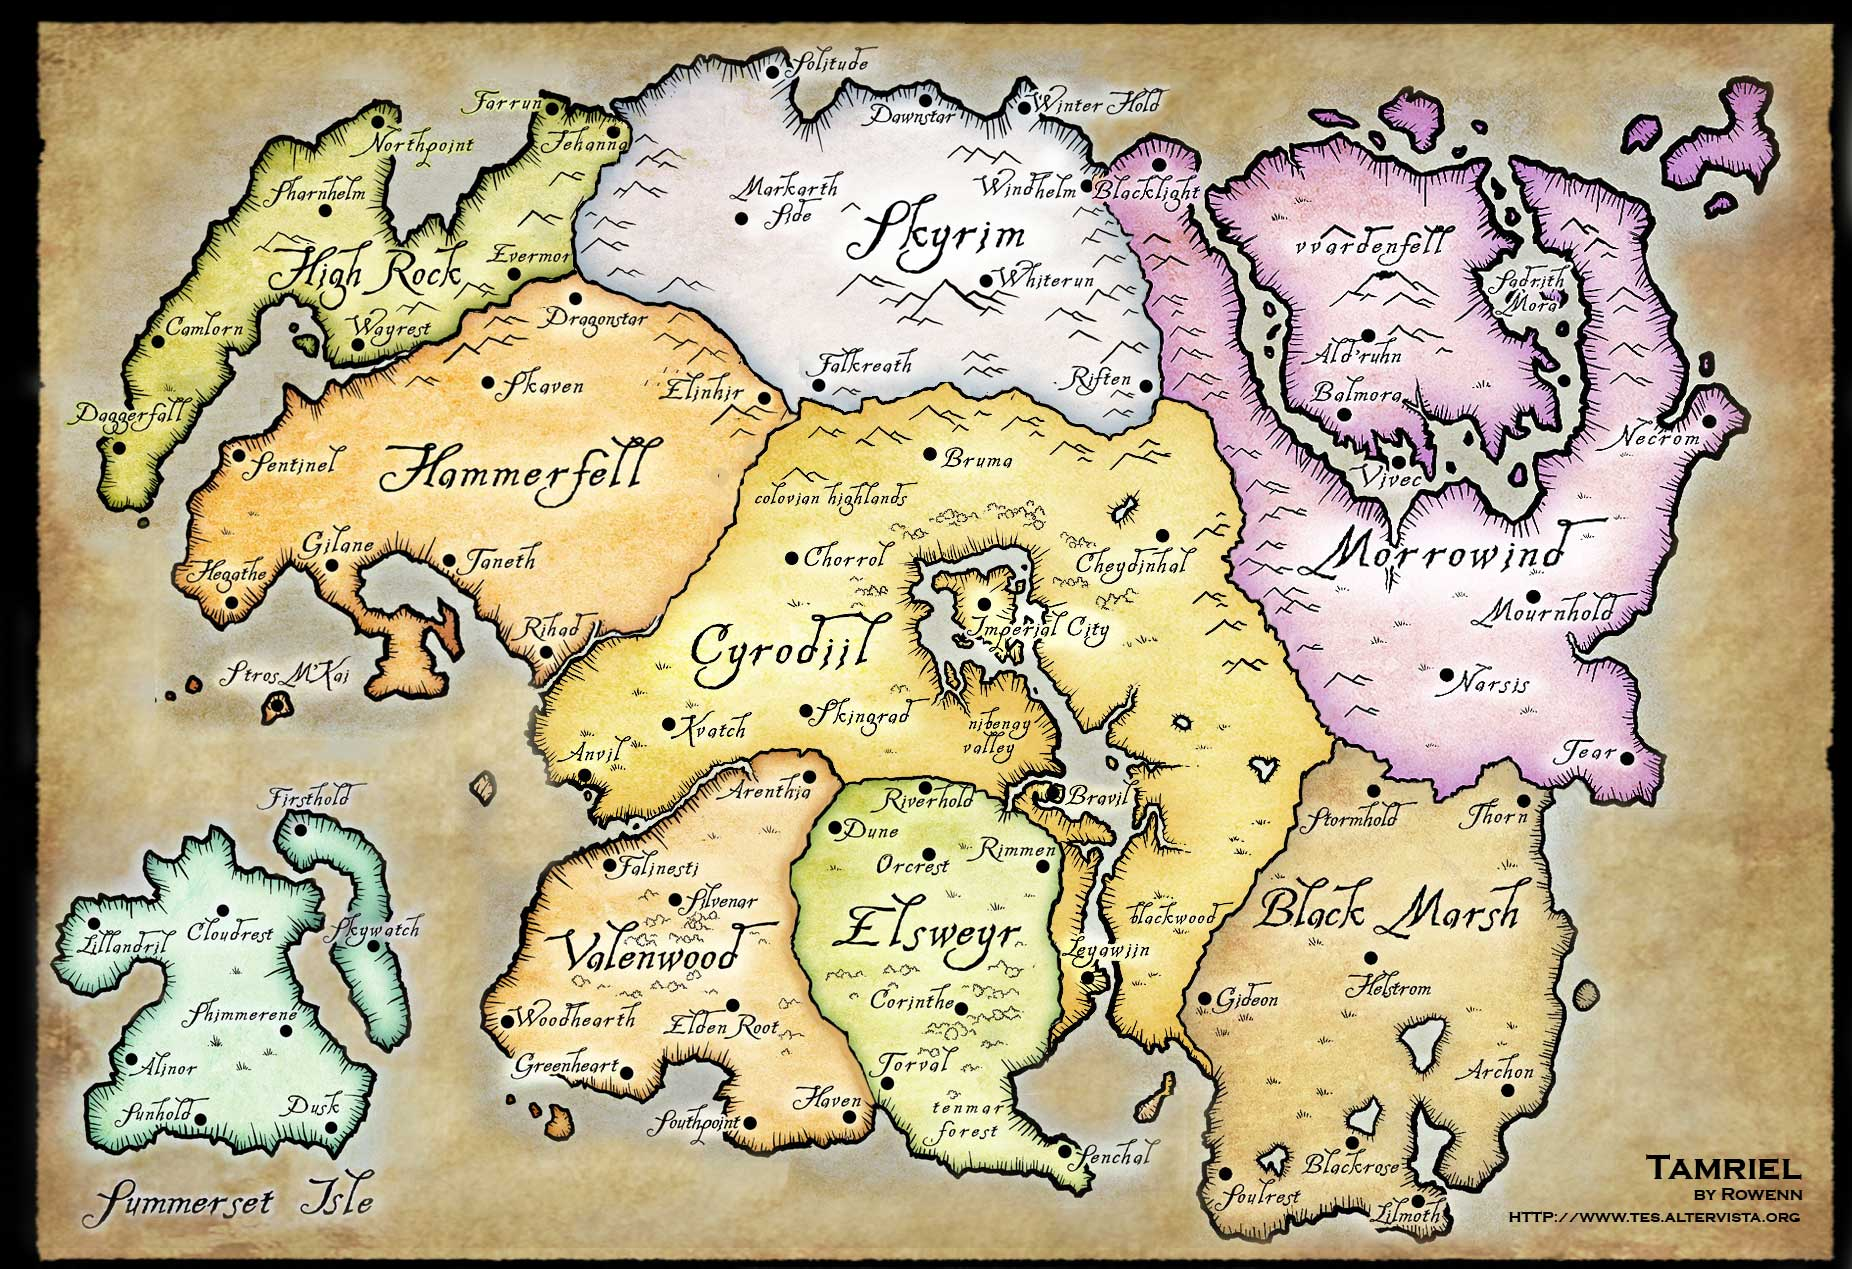 The WHOLE MAP of Tamriel!